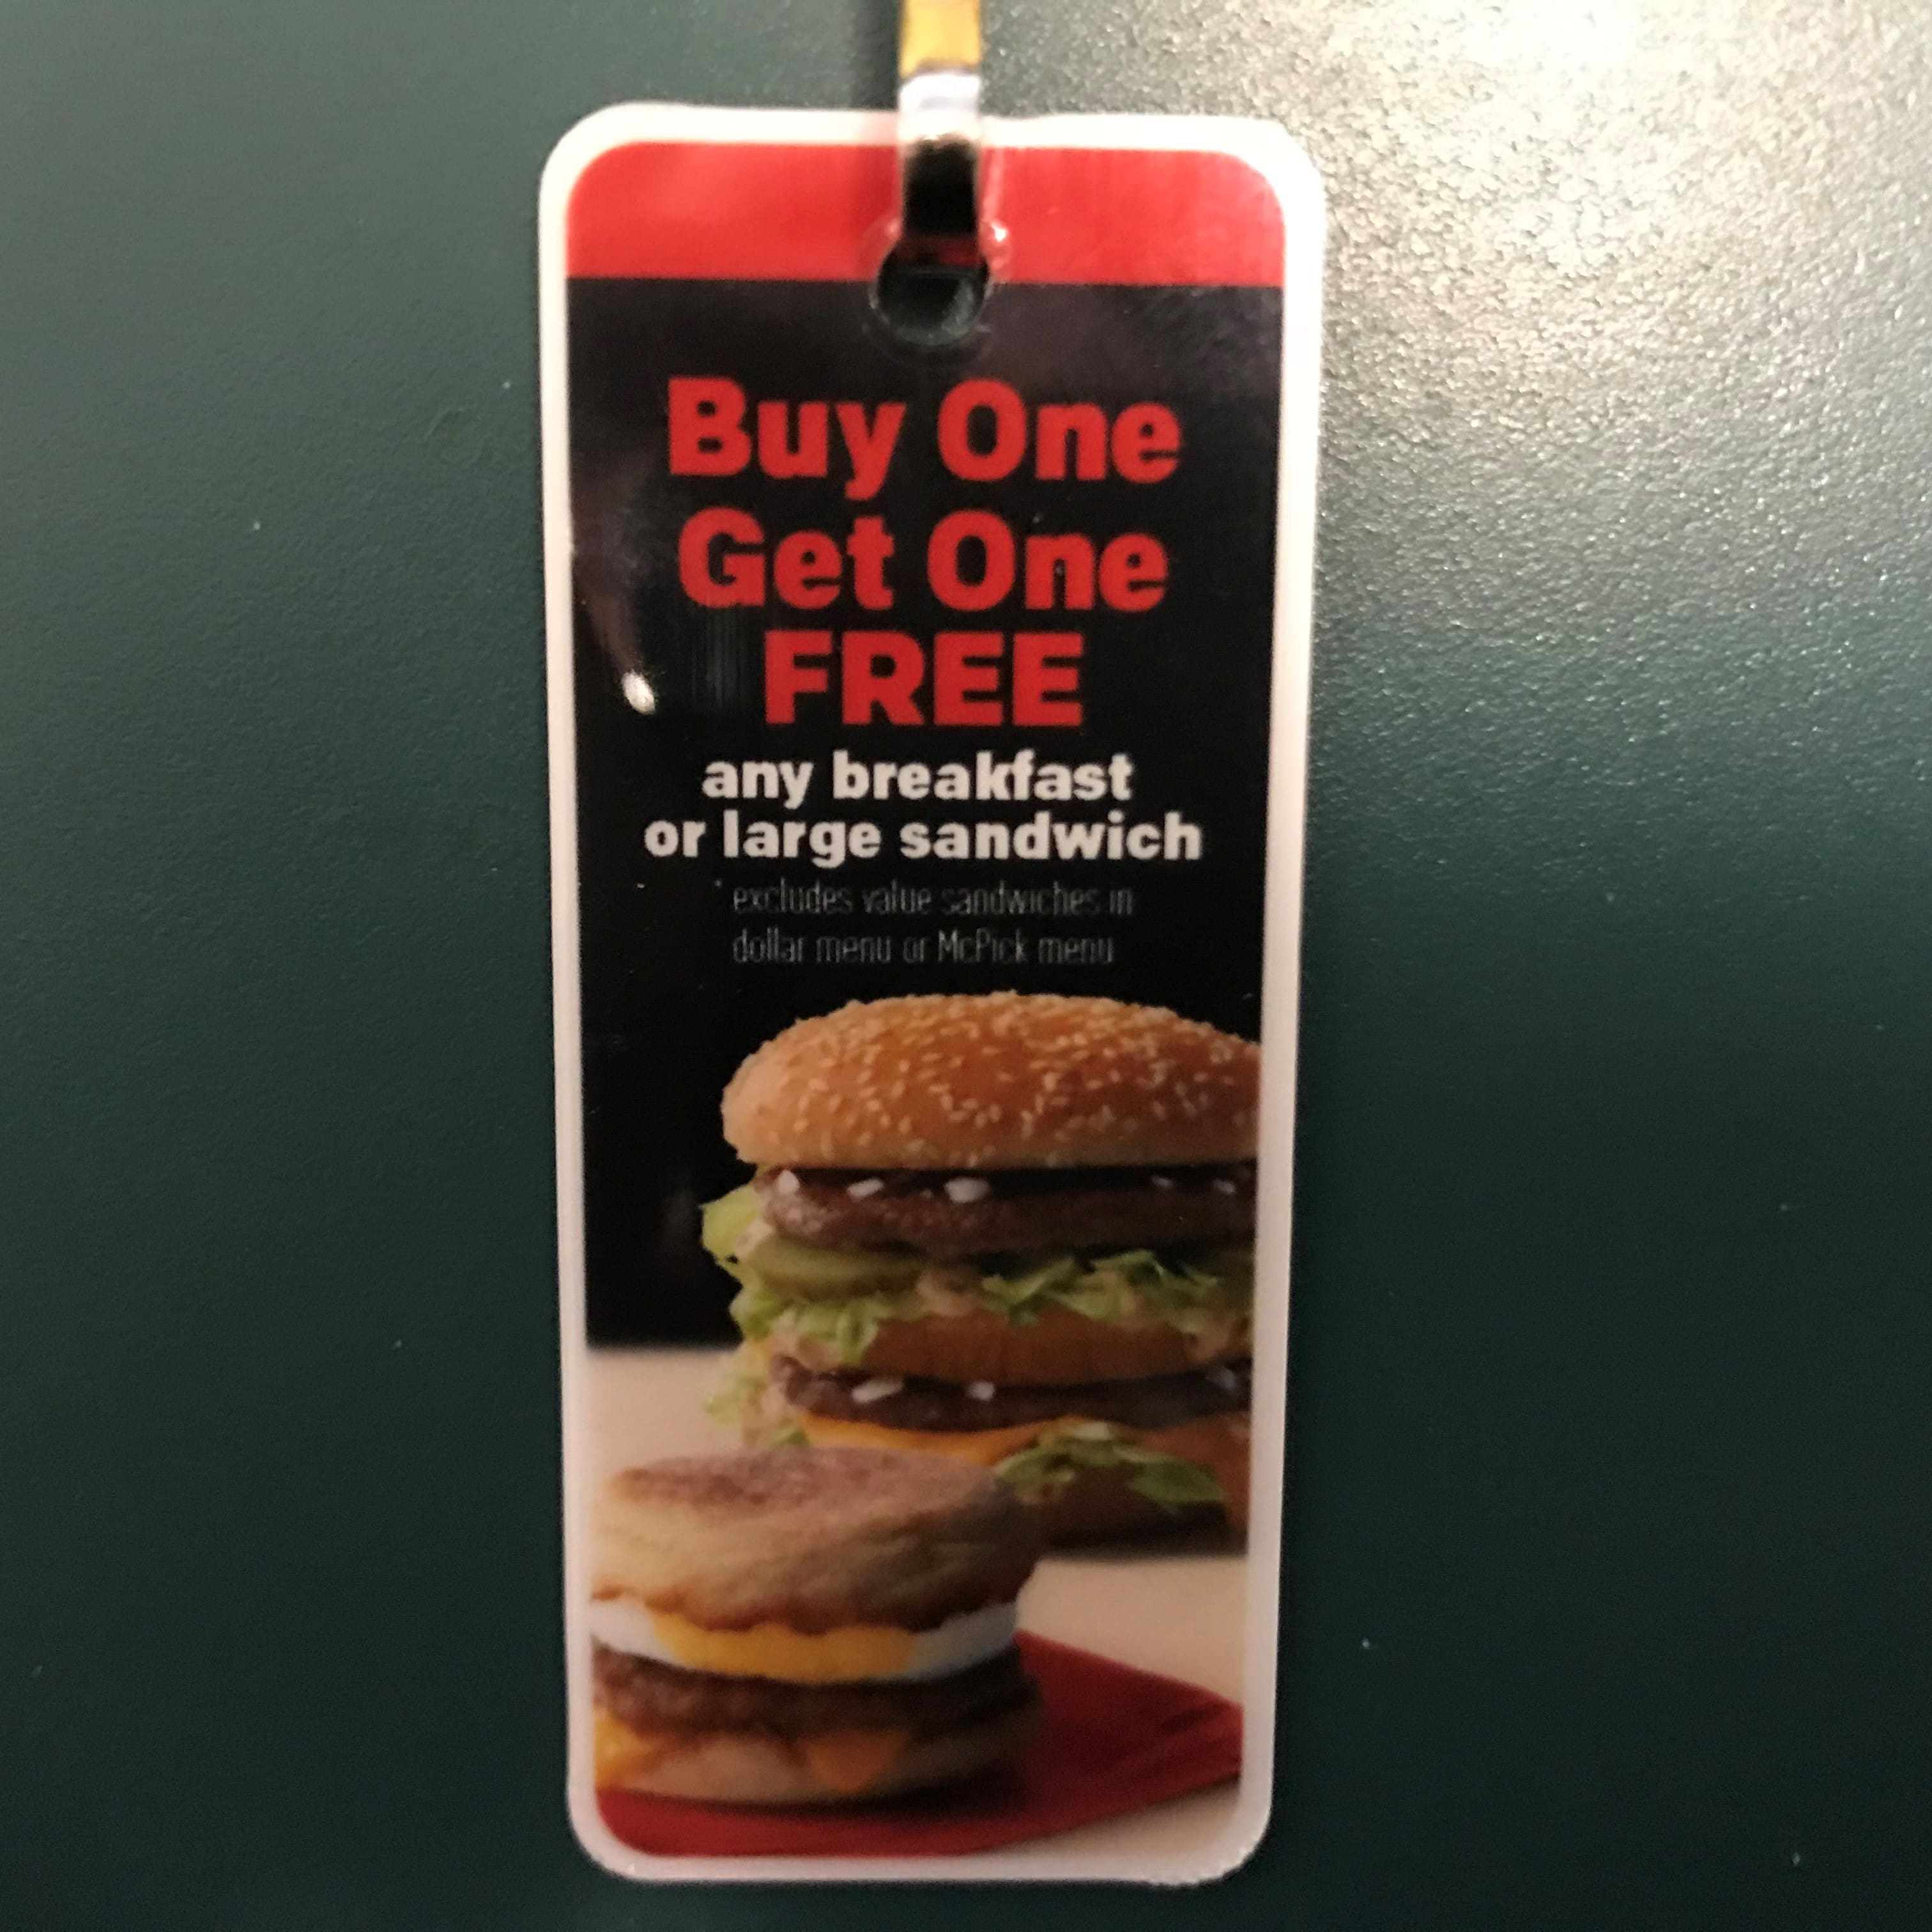 Mcdonalds Free Keychain Coupon Tag For Bogo Breakfast Or Lunch